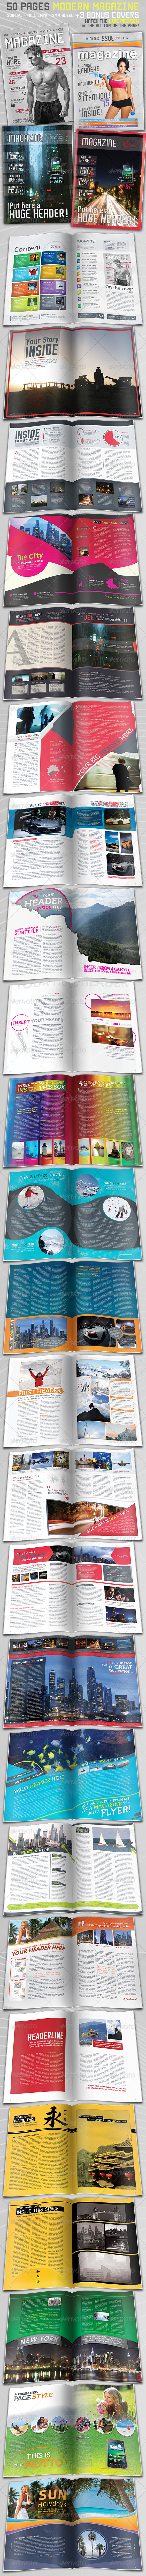 GraphicRiver 50 Page Magazine Newsletter & 3 Bonus Covers 2590295